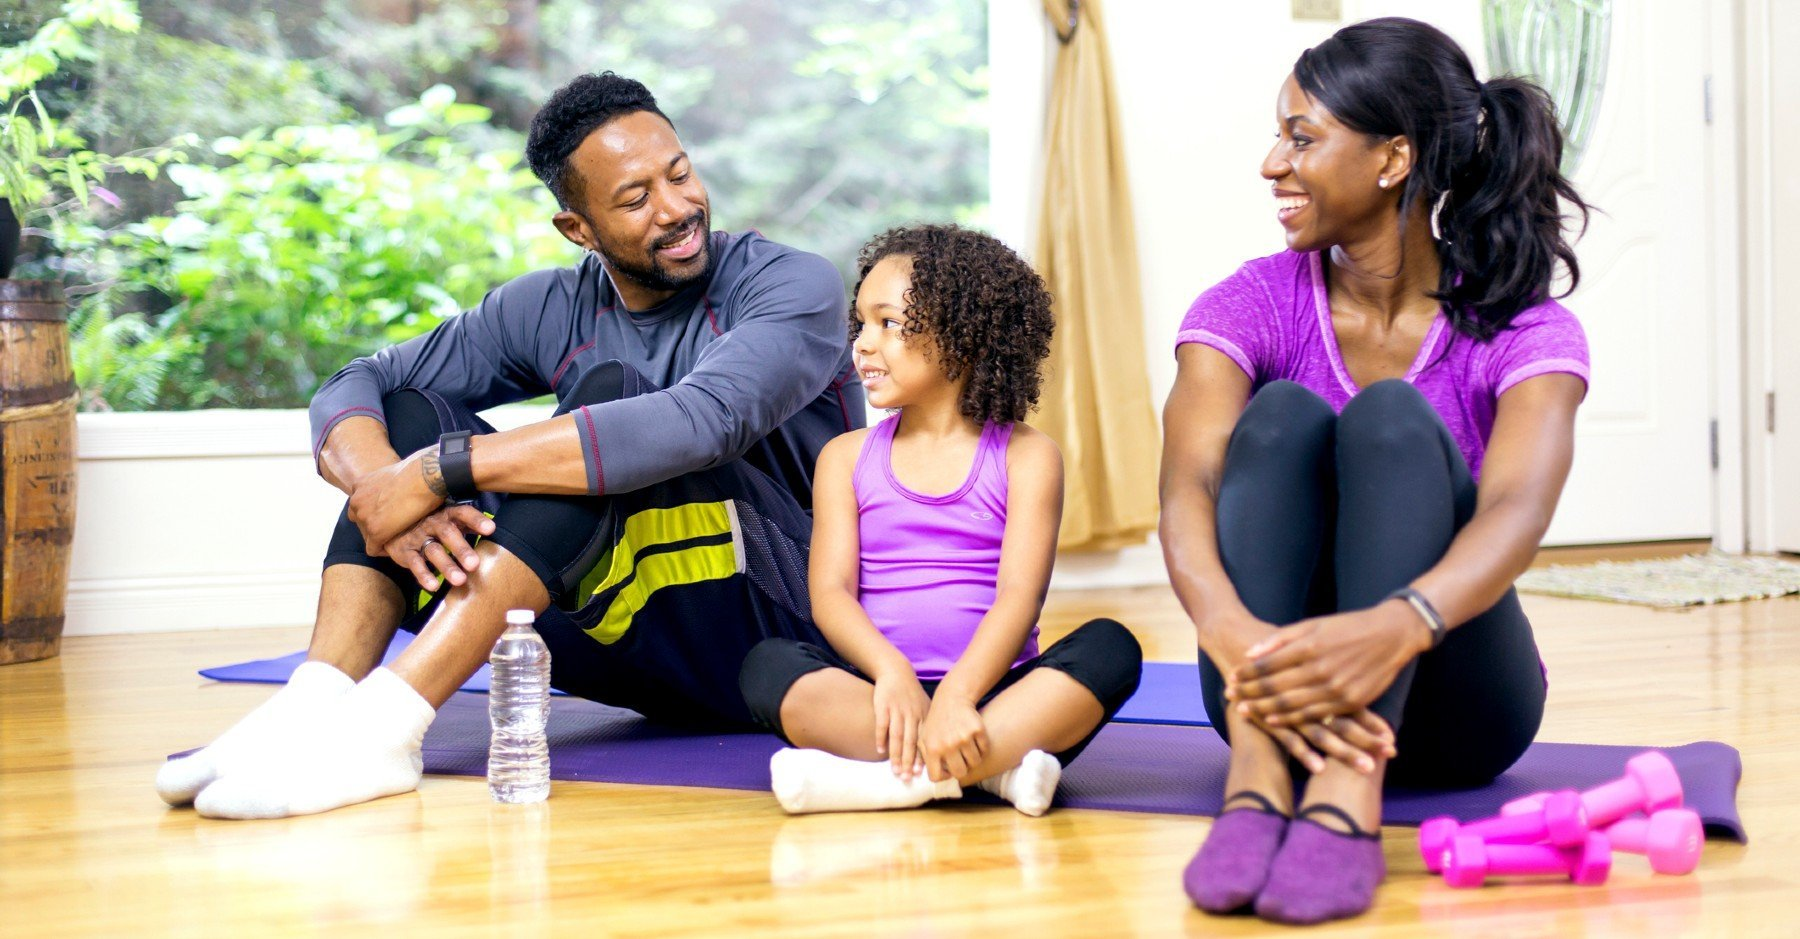 Make Home Workouts Fun | 4 Fitness Games To Play With Your Buddies